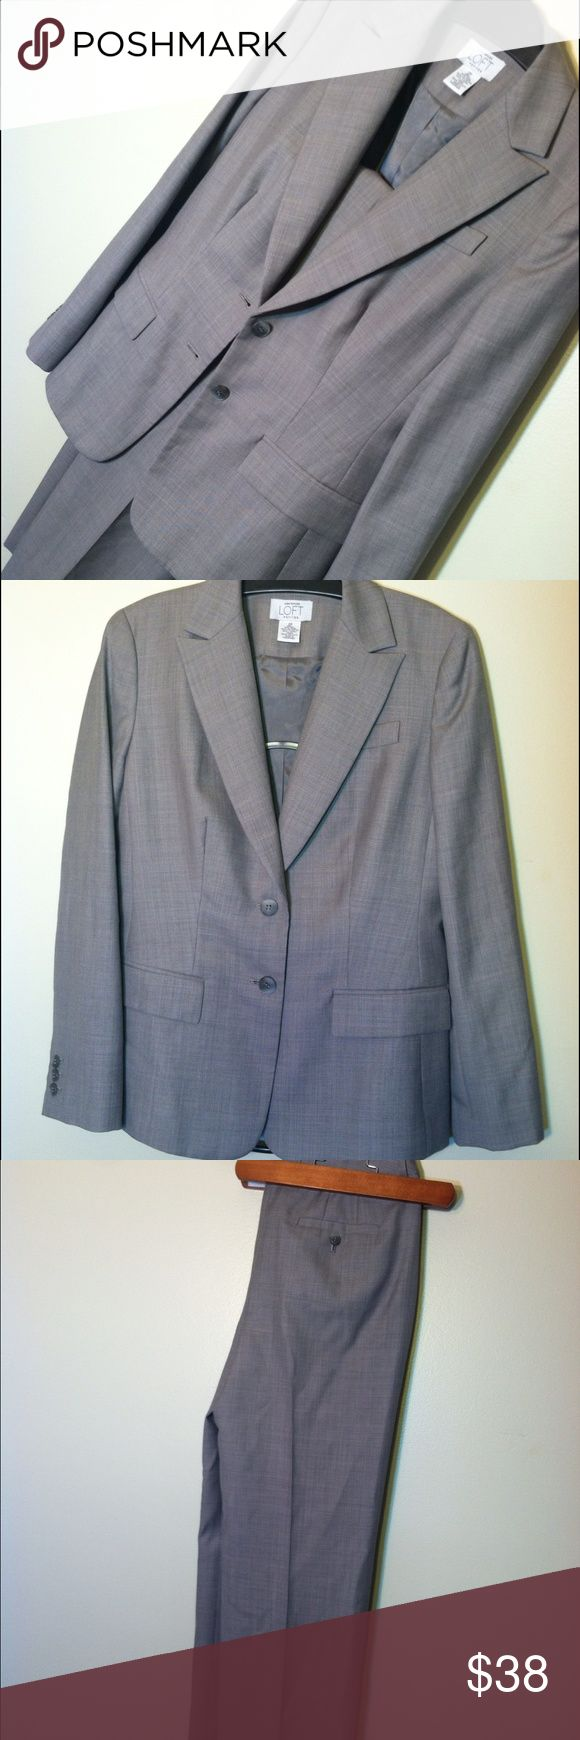 NWOT ANN TAYLOR LOFT FULL SUIT Ann Taylor Loft petite suit in great condition! Let me know if you have any questions or need anymore pictures!❤️ Ann Taylor Jackets & Coats Blazers